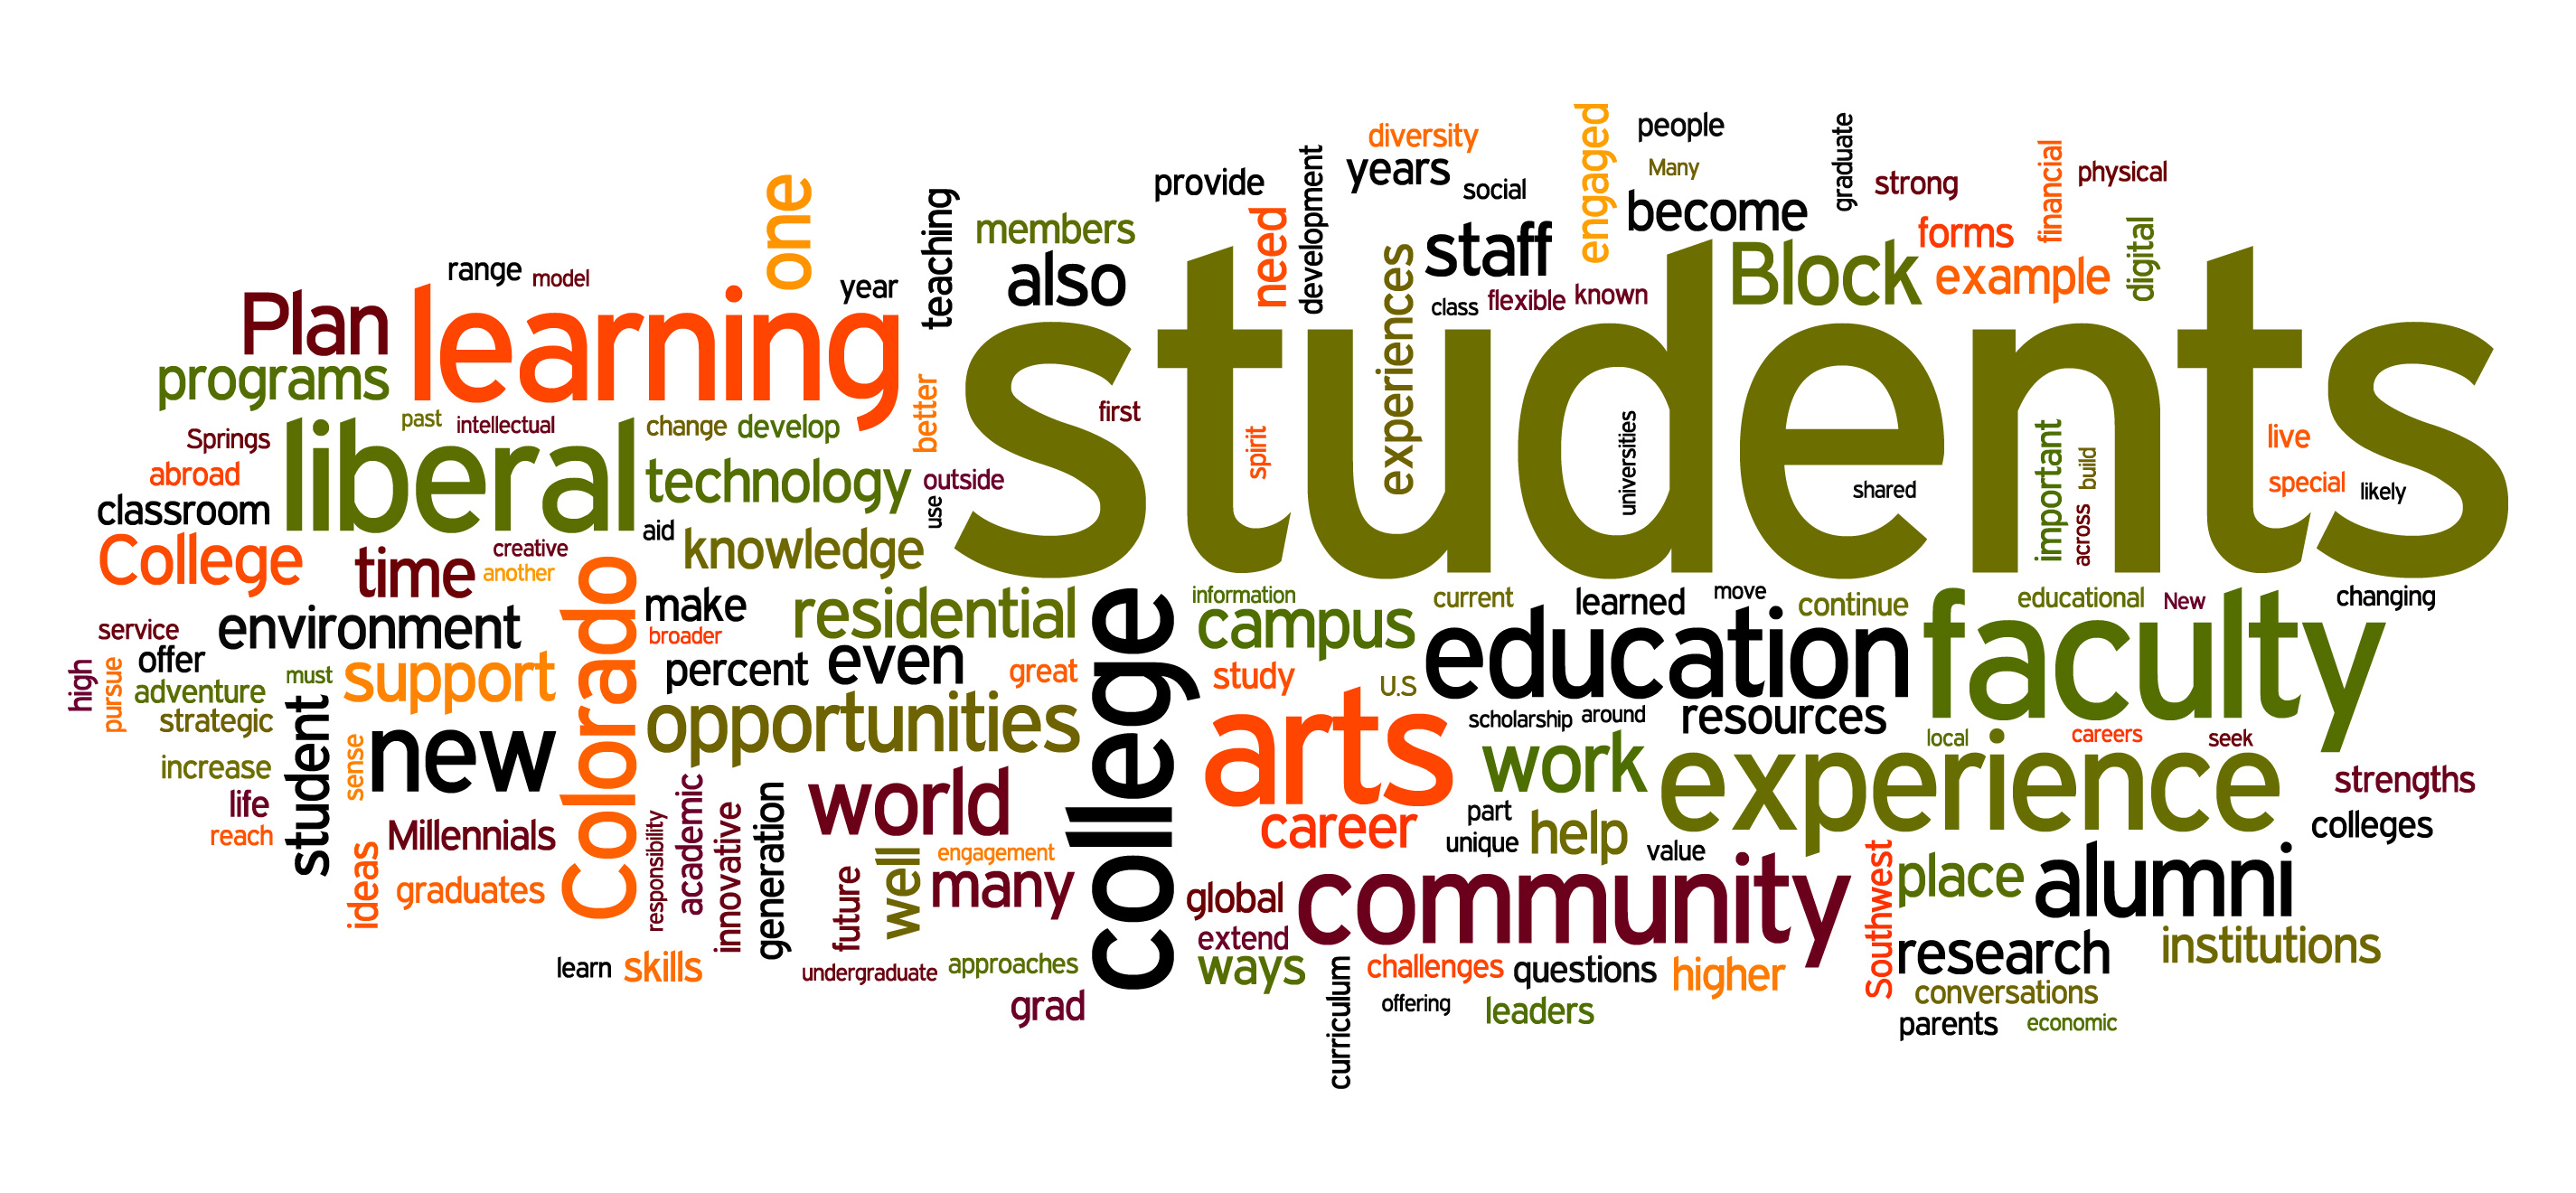 collage admission essay Transform your admission essay from good to great with our help.